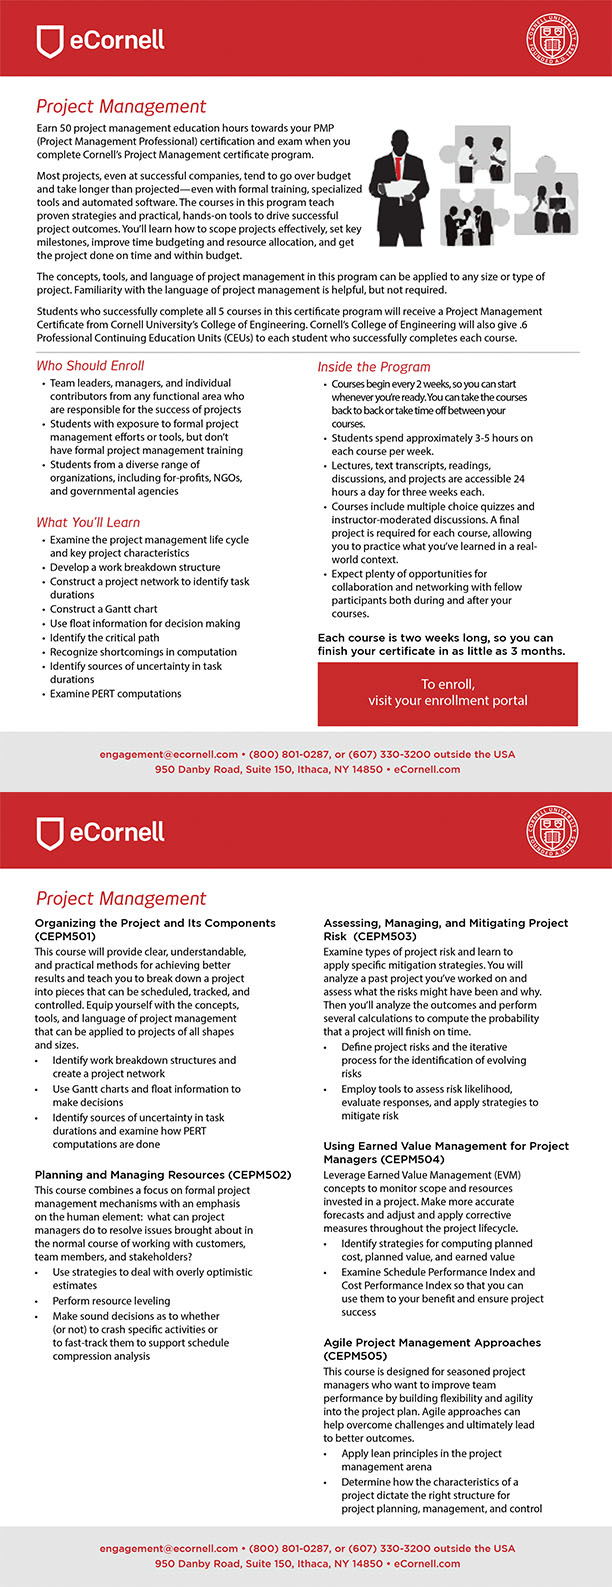 Project Management Flyer for Corporations